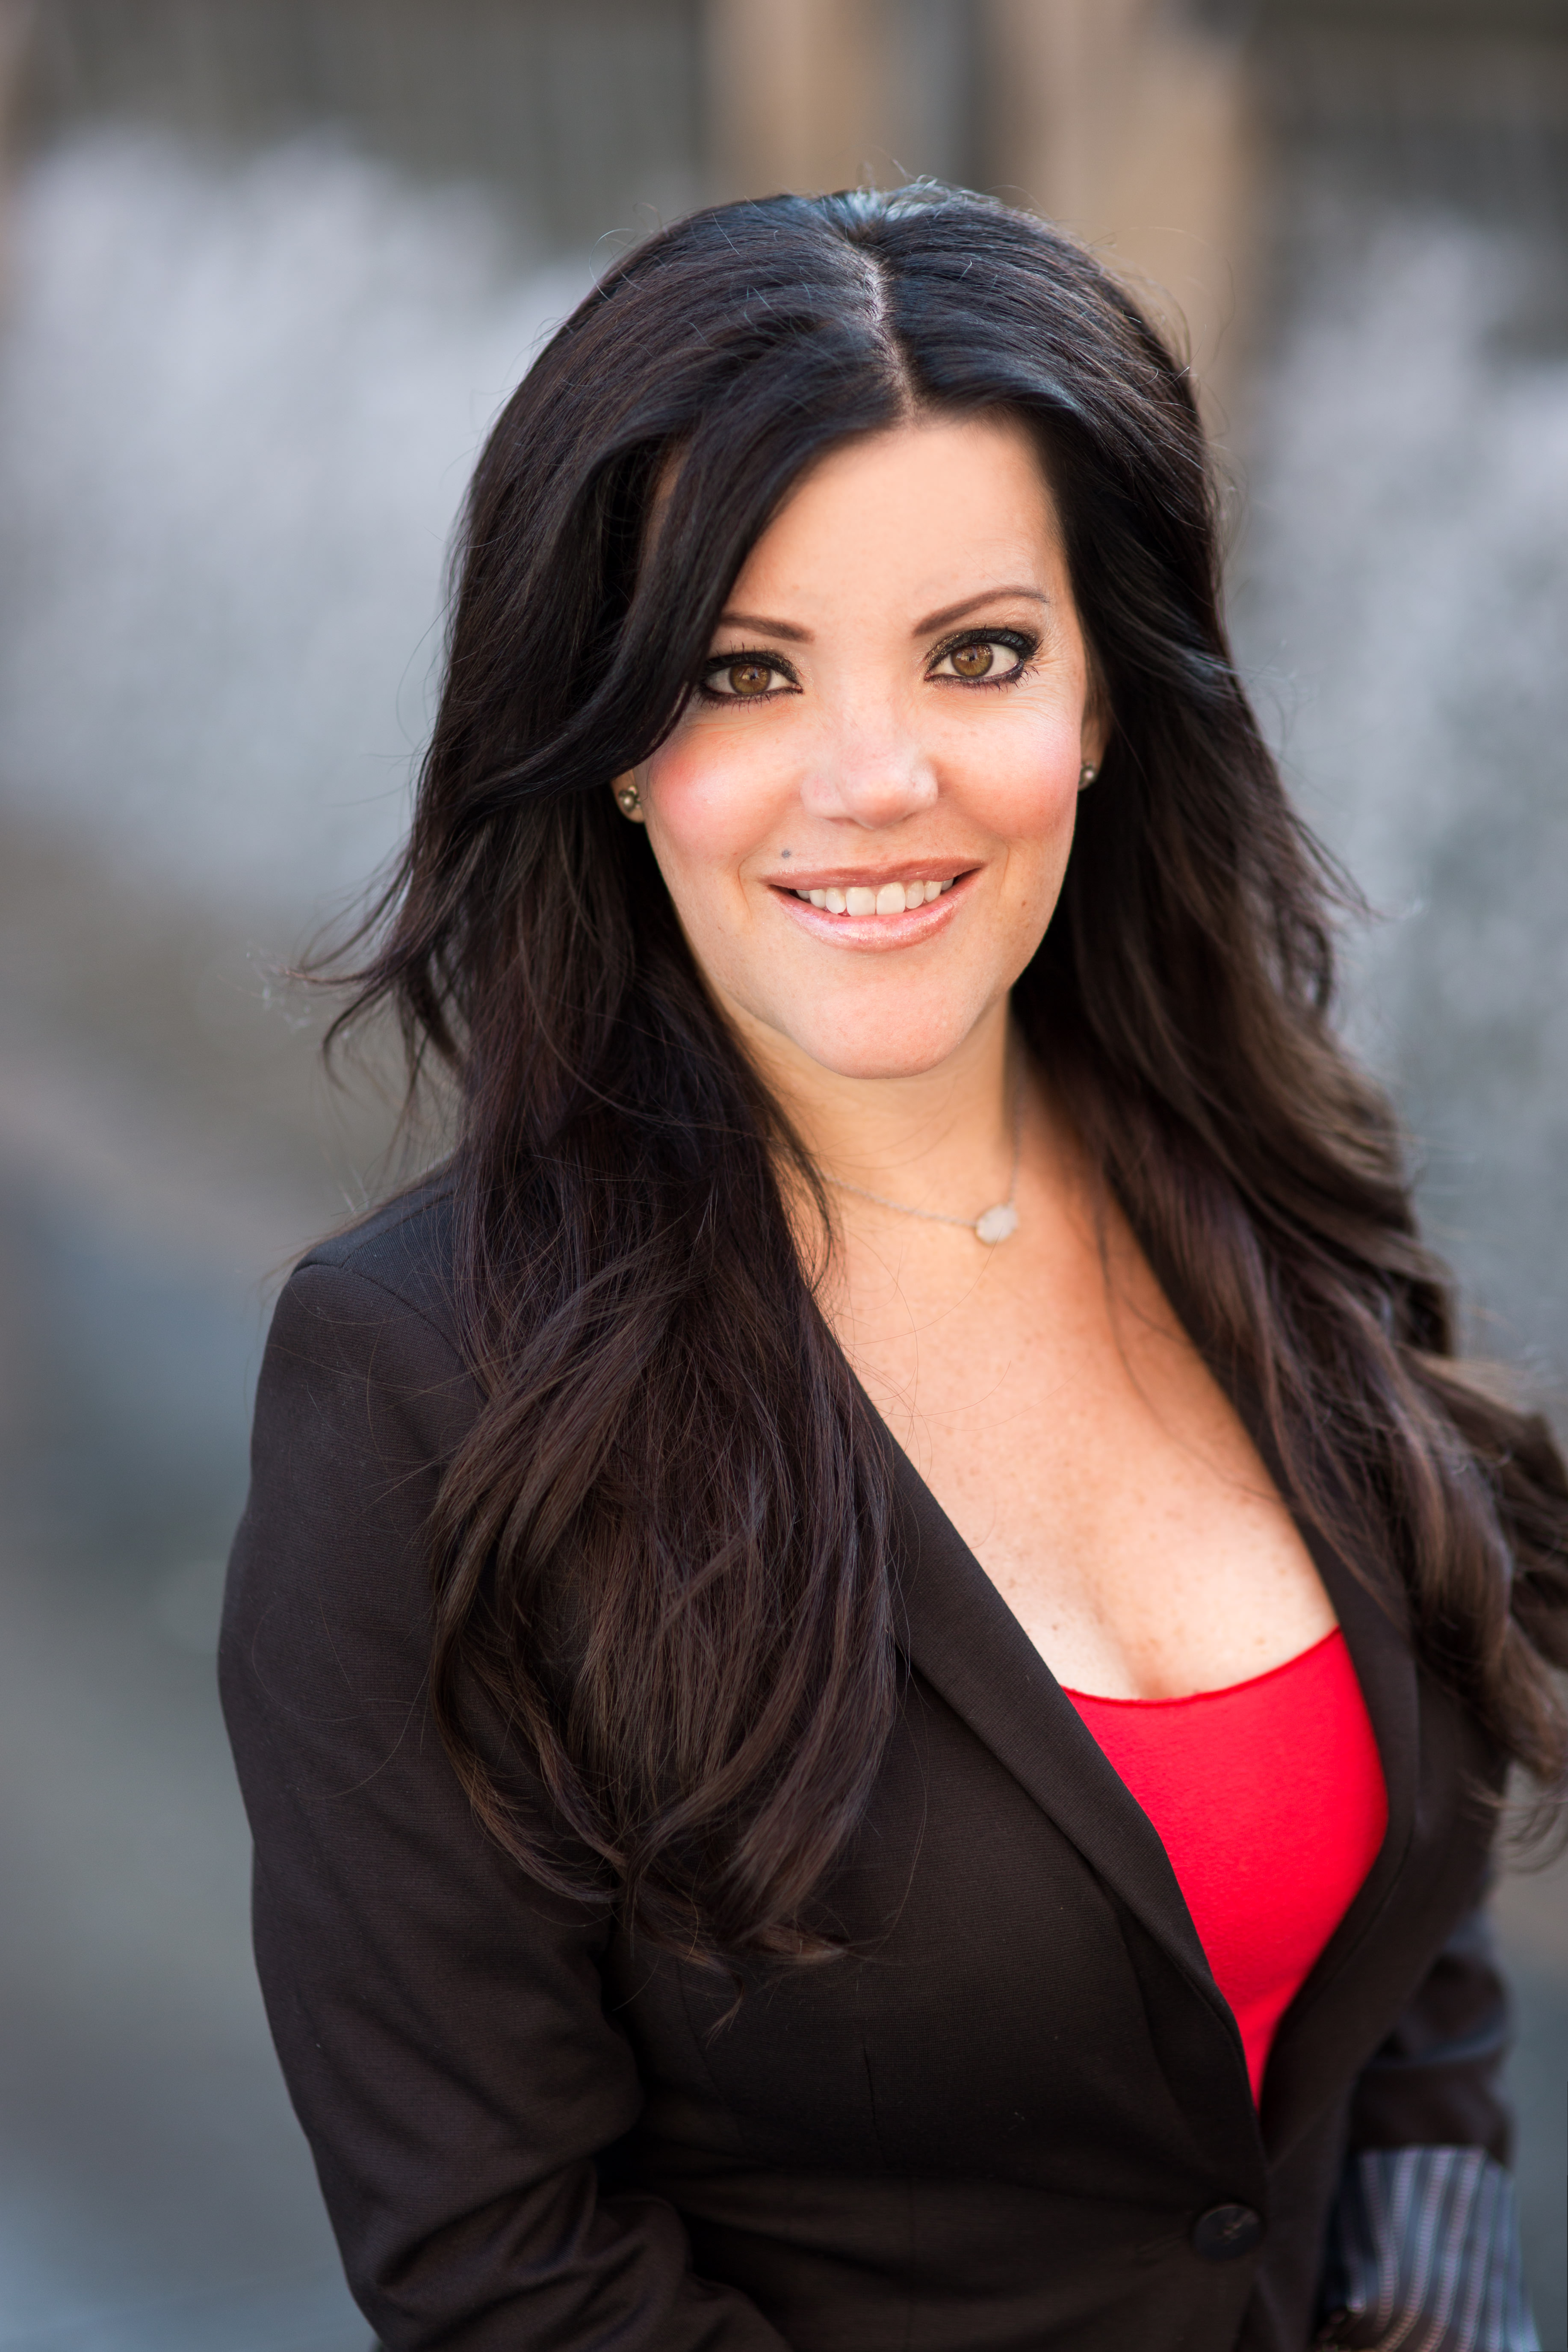 Five Star Automotive >> Maria Gallucci of Uptown Realty Group Recognized for Professional Excellence by Five Star ...